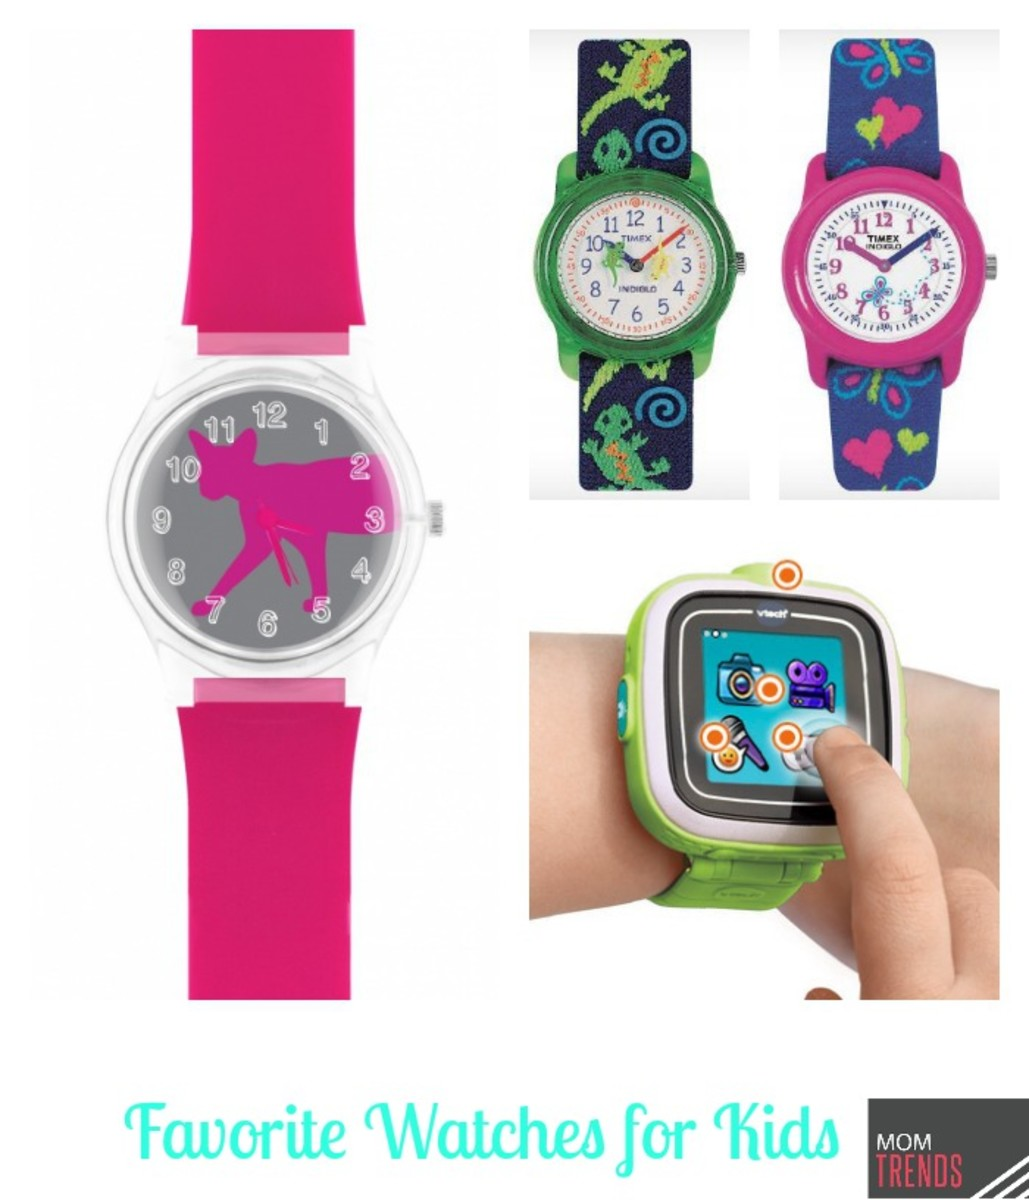 Favorite Watches for Kids